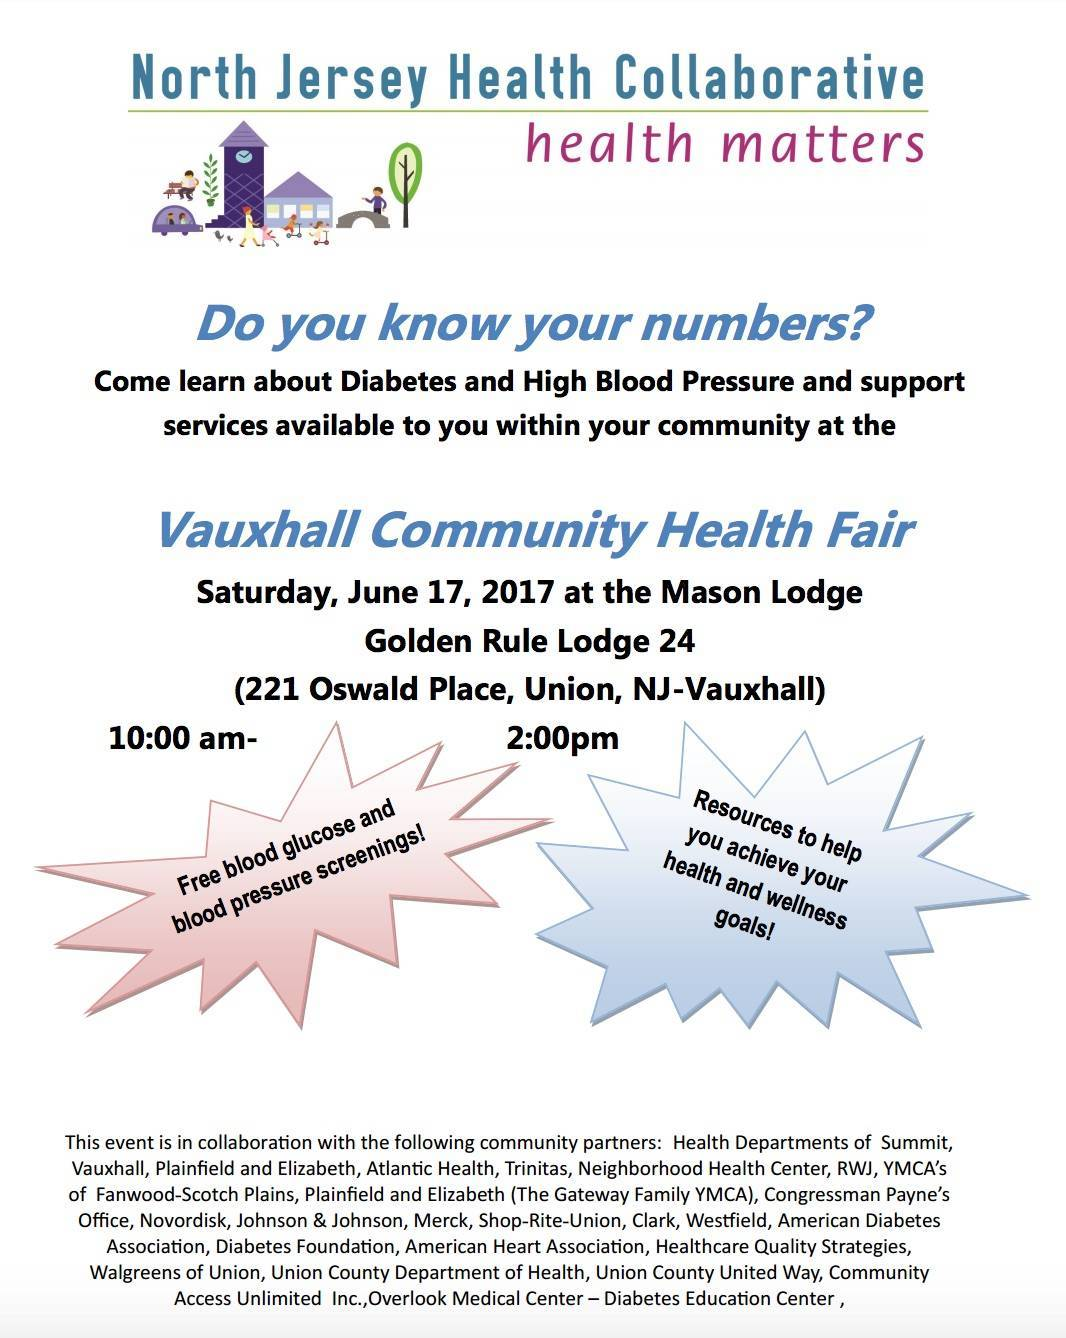 7564ba0d48139b00ba96_vauxhall_community_health_fair.jpg